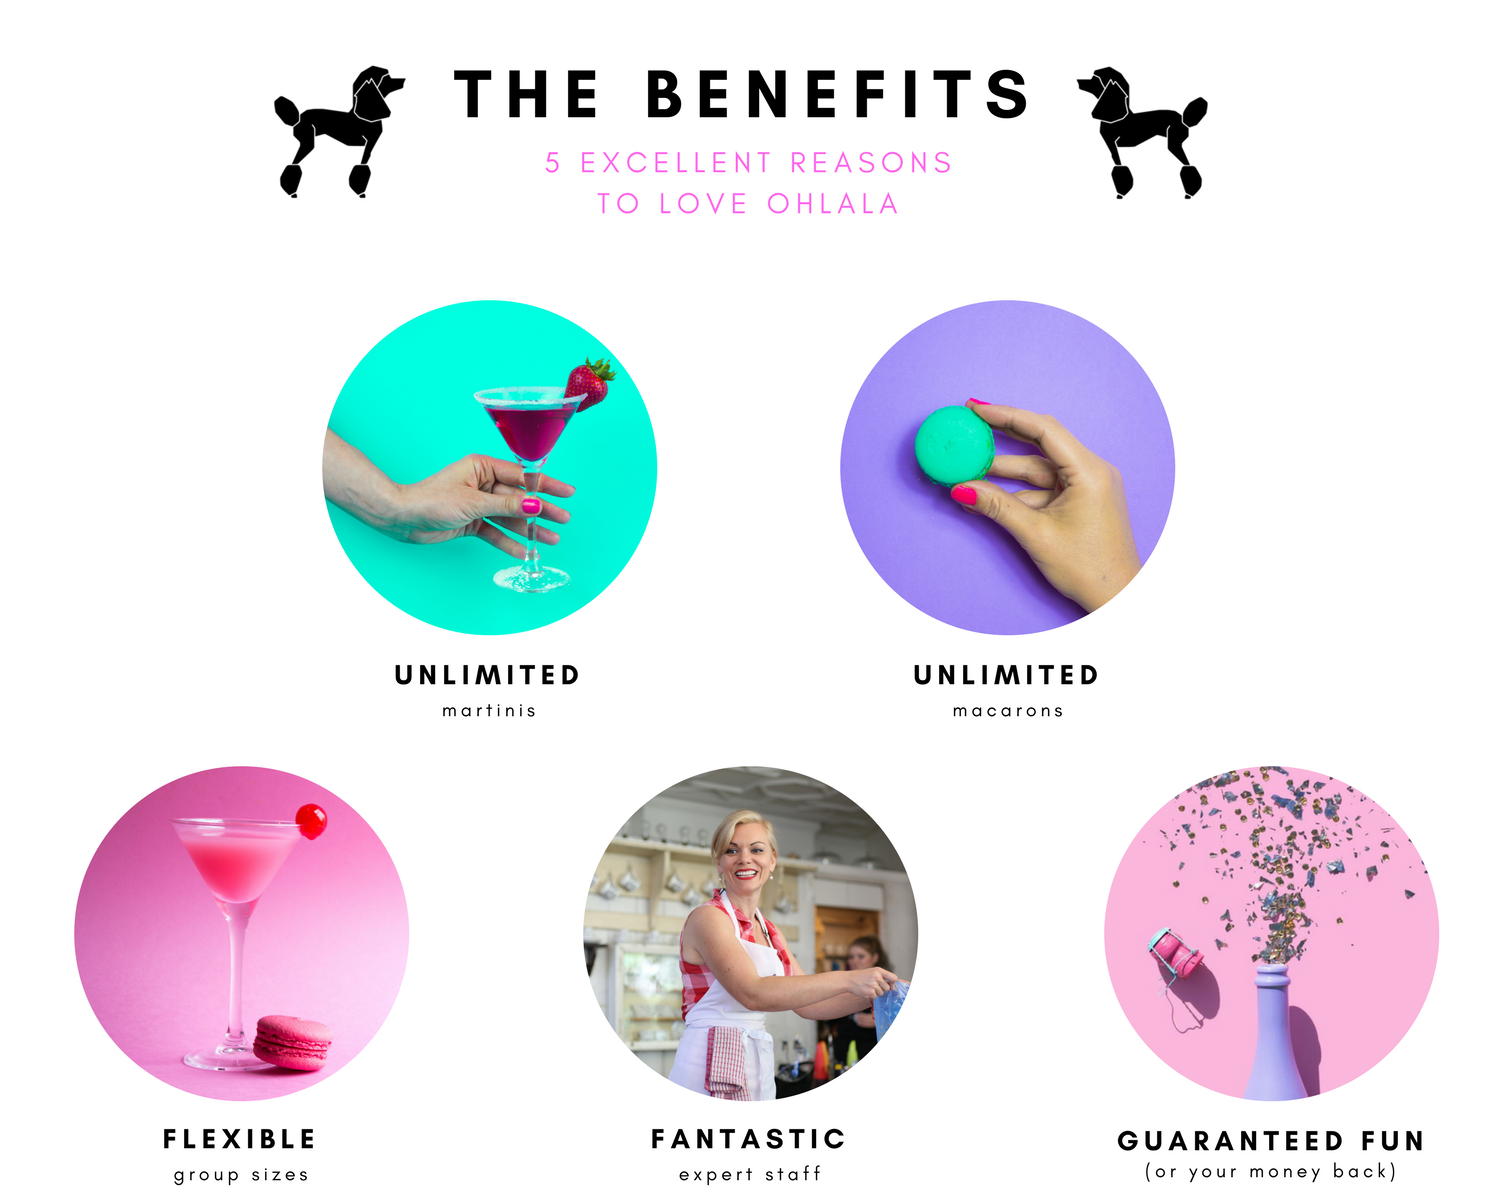 5 reasons to love Ohlala martini and macaron hen parties - london